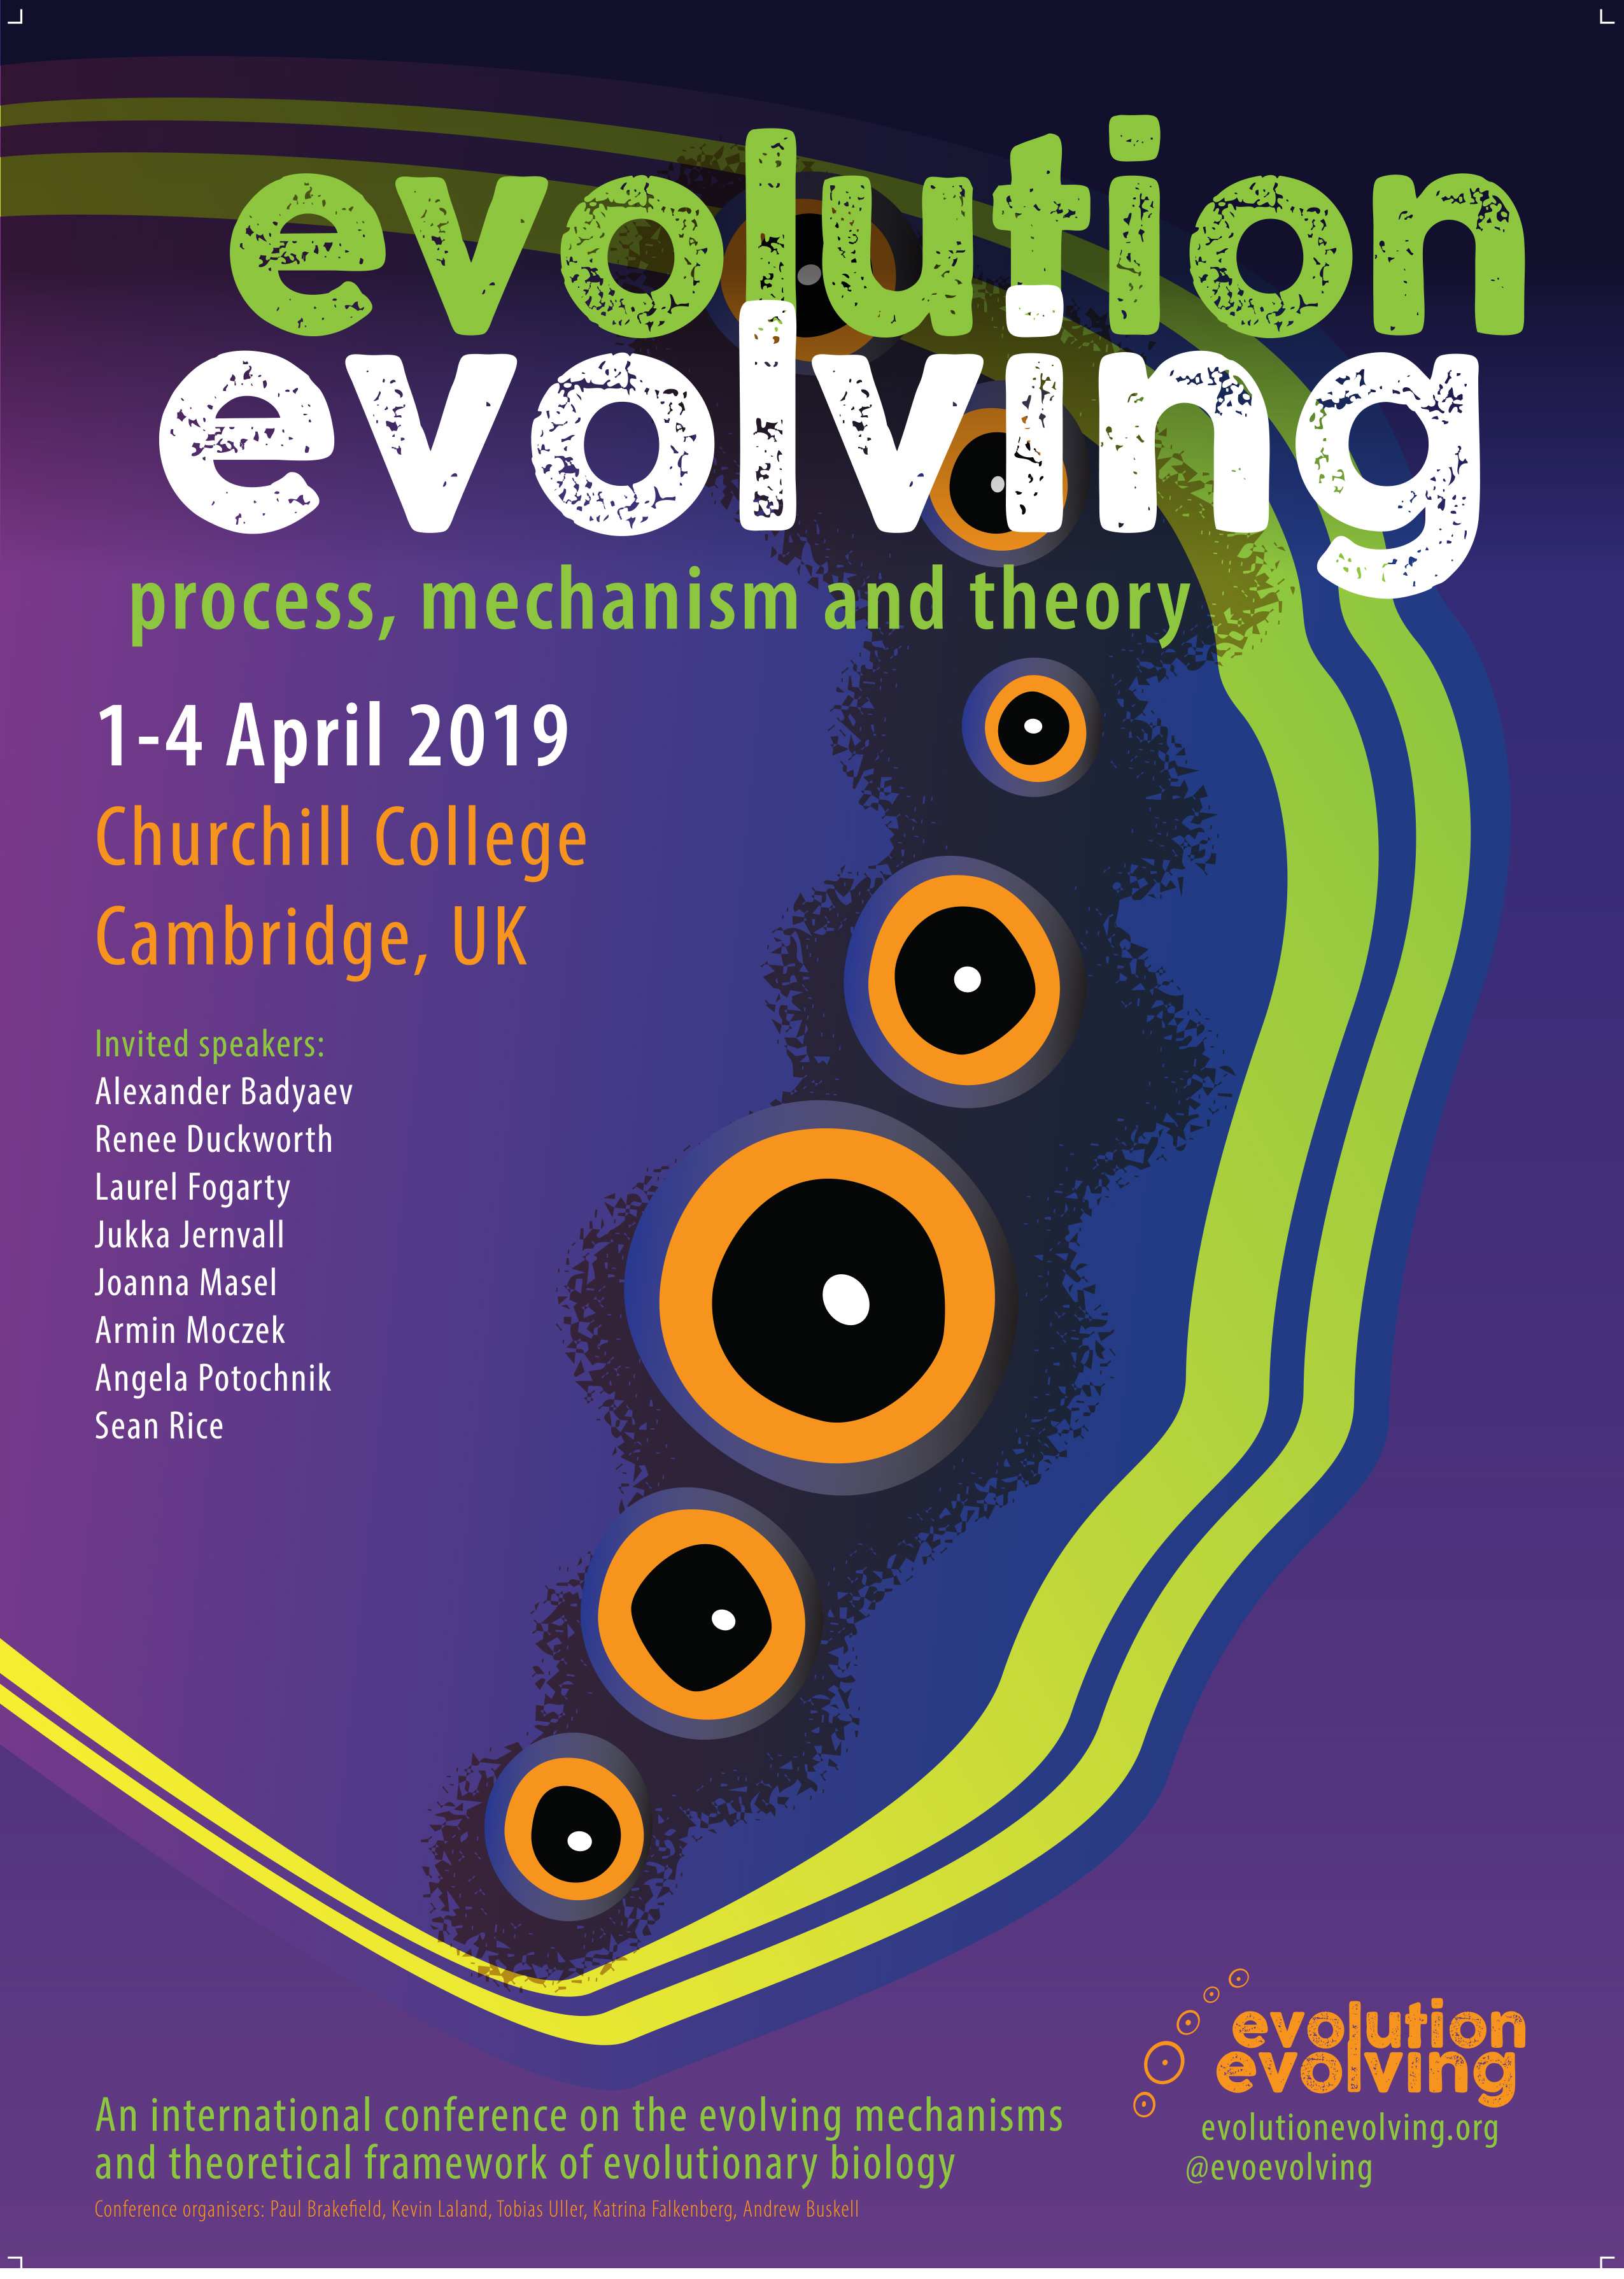 Evolution Evolving conference poster